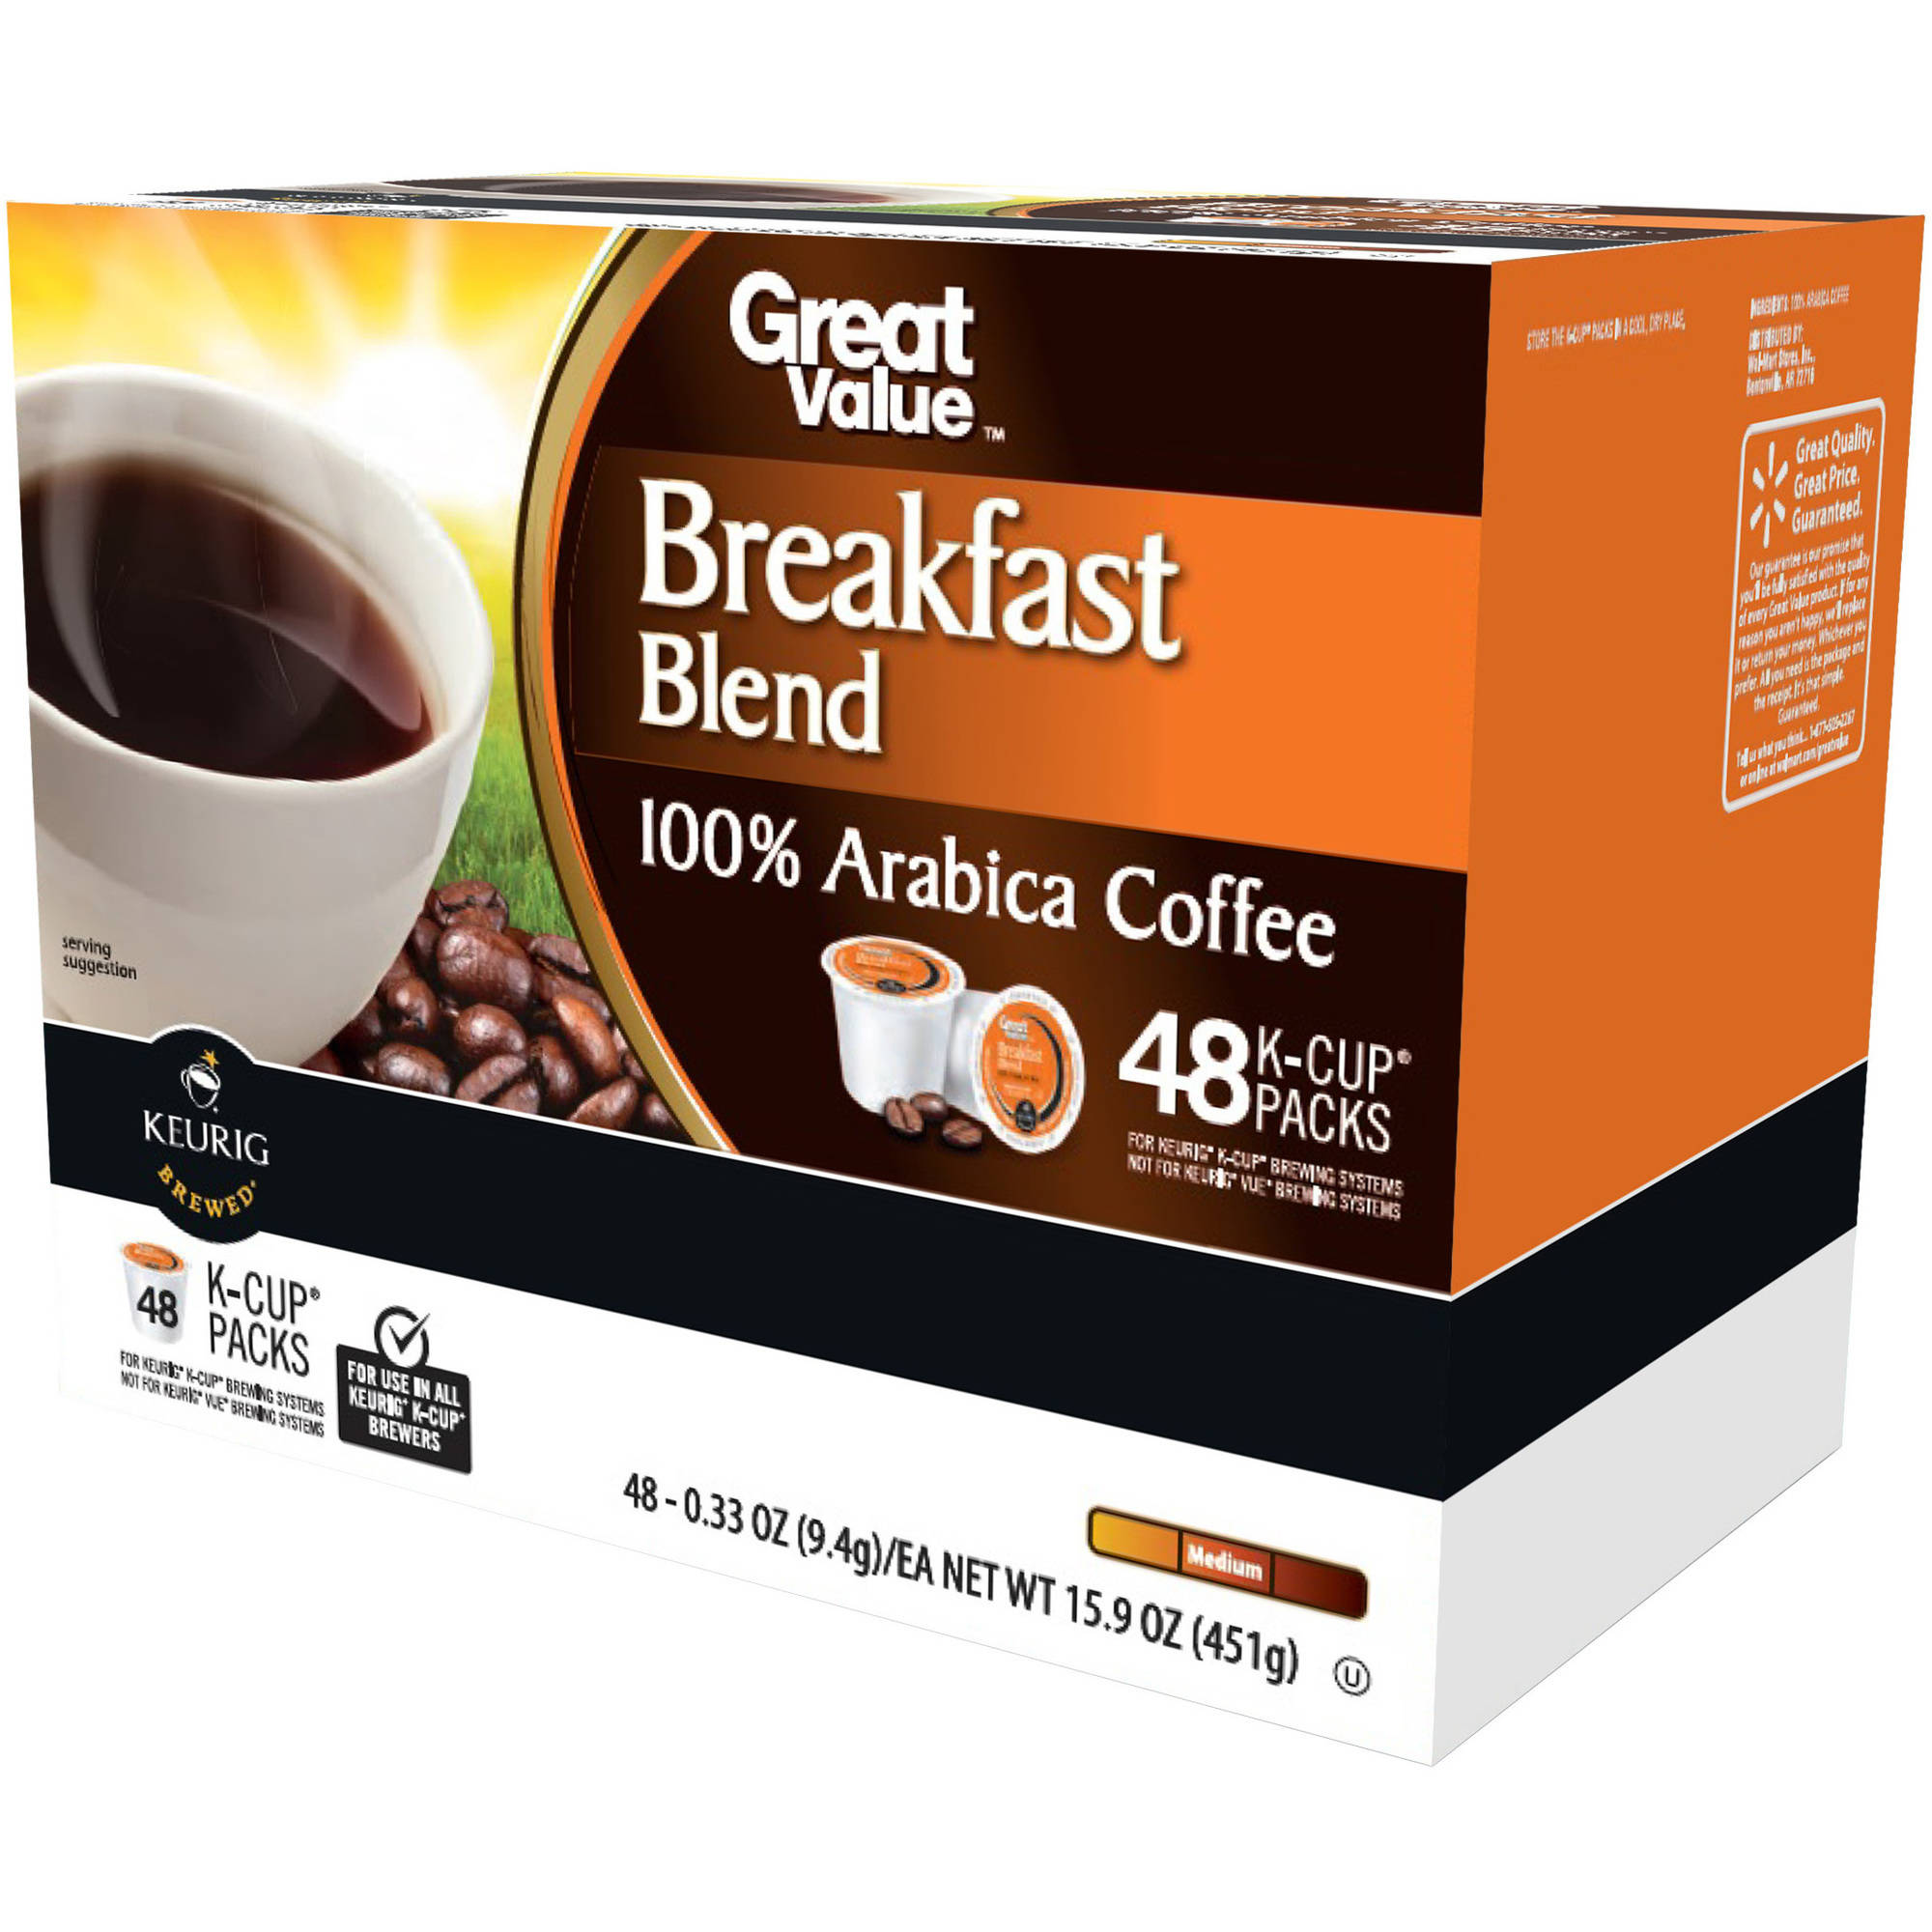 Great Value Breakfast Blend Medium Roast Coffee K-Cups, 0.33 oz, 48 count